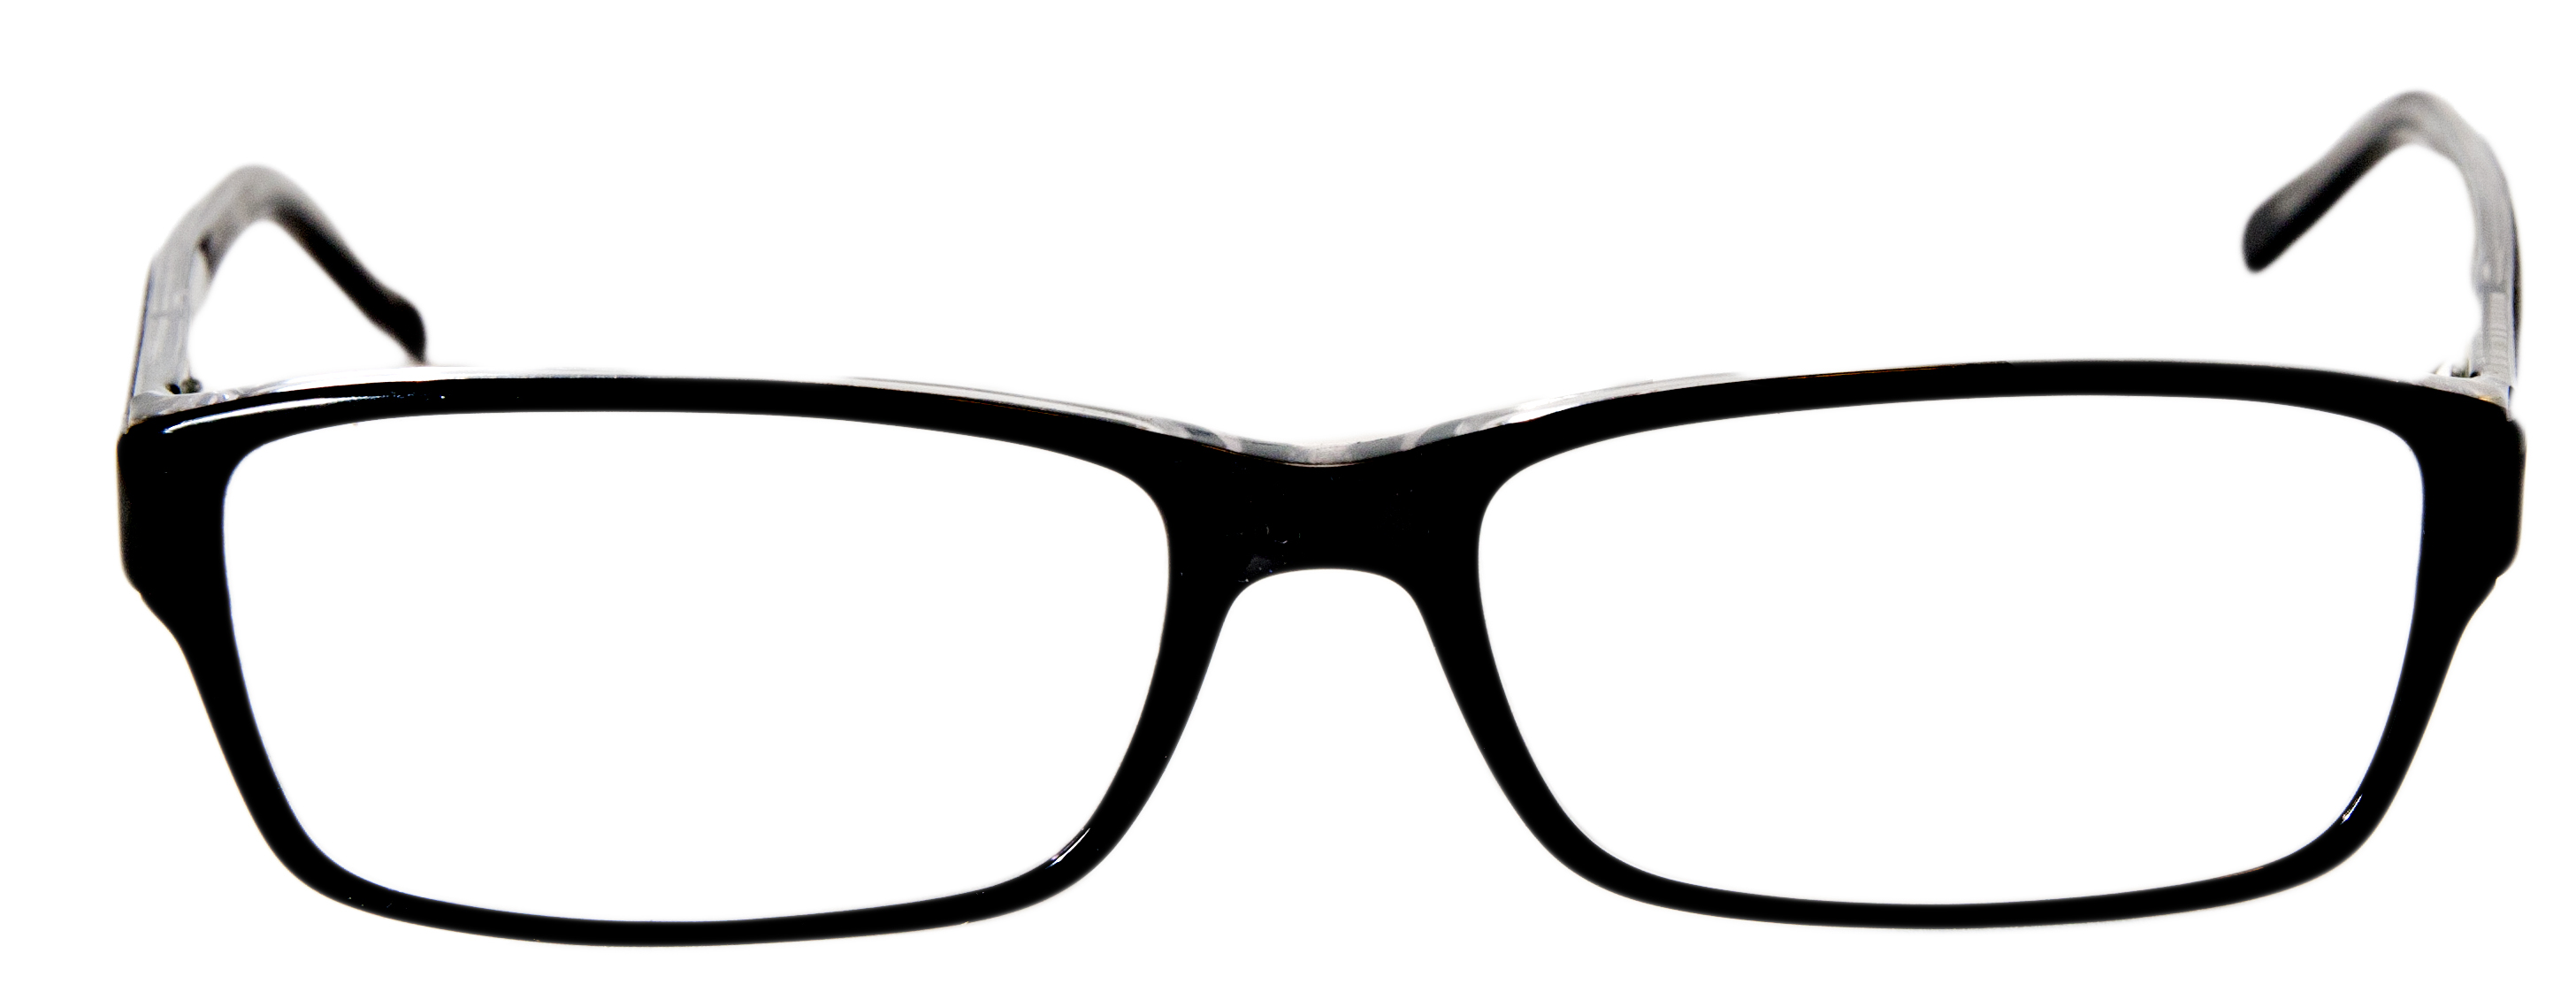 Glasses | Free Download Clip Art | Free Clip Art